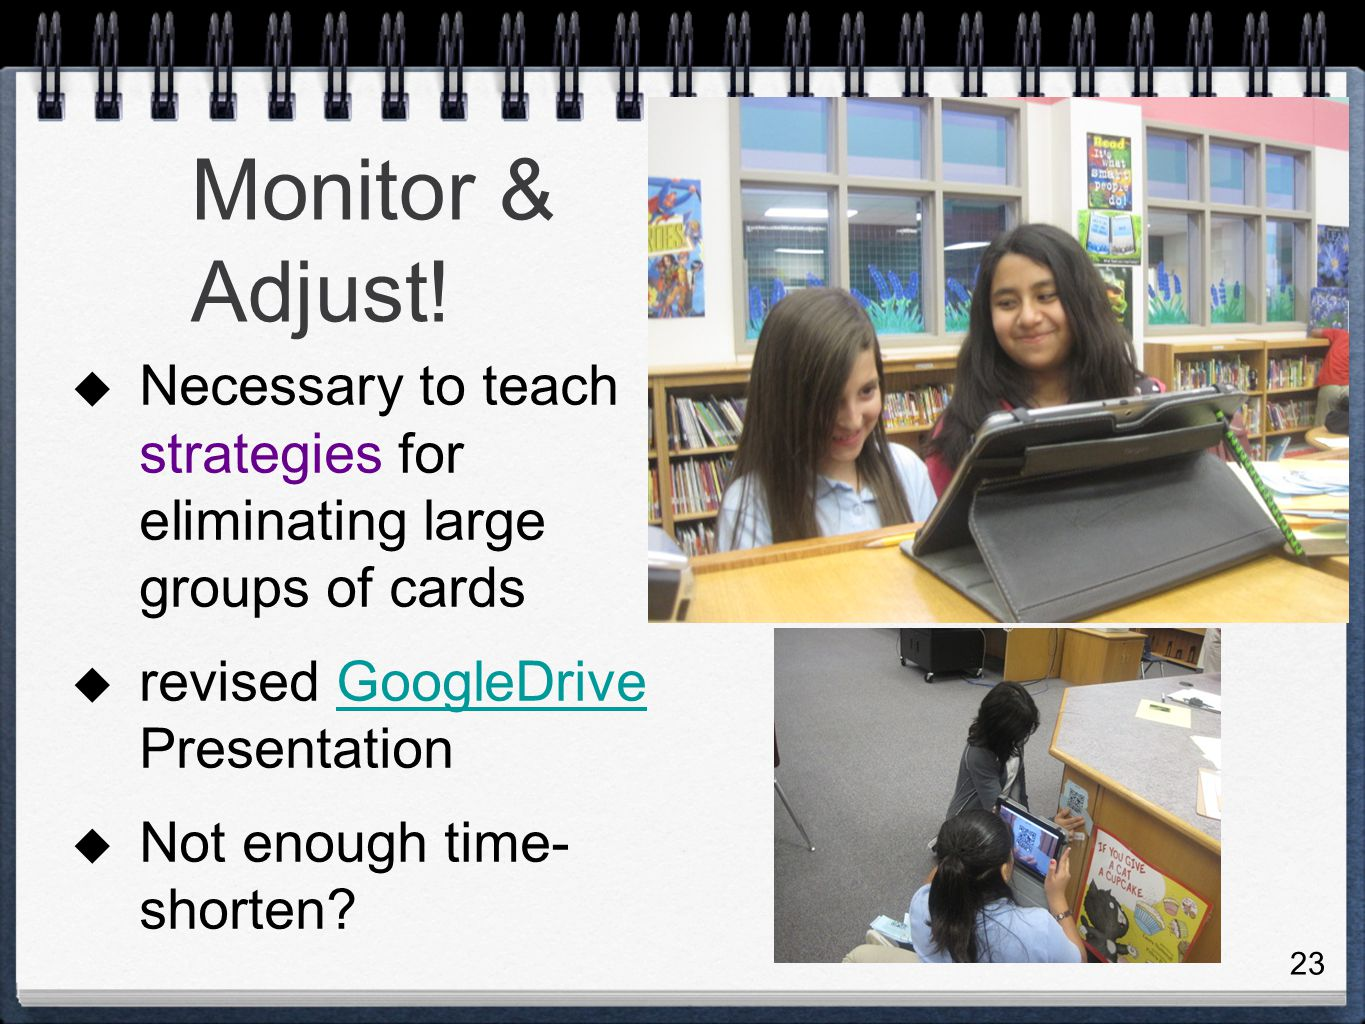 Monitor & Adjust! Necessary to teach strategies for eliminating large groups of cards. revised GoogleDrive Presentation.